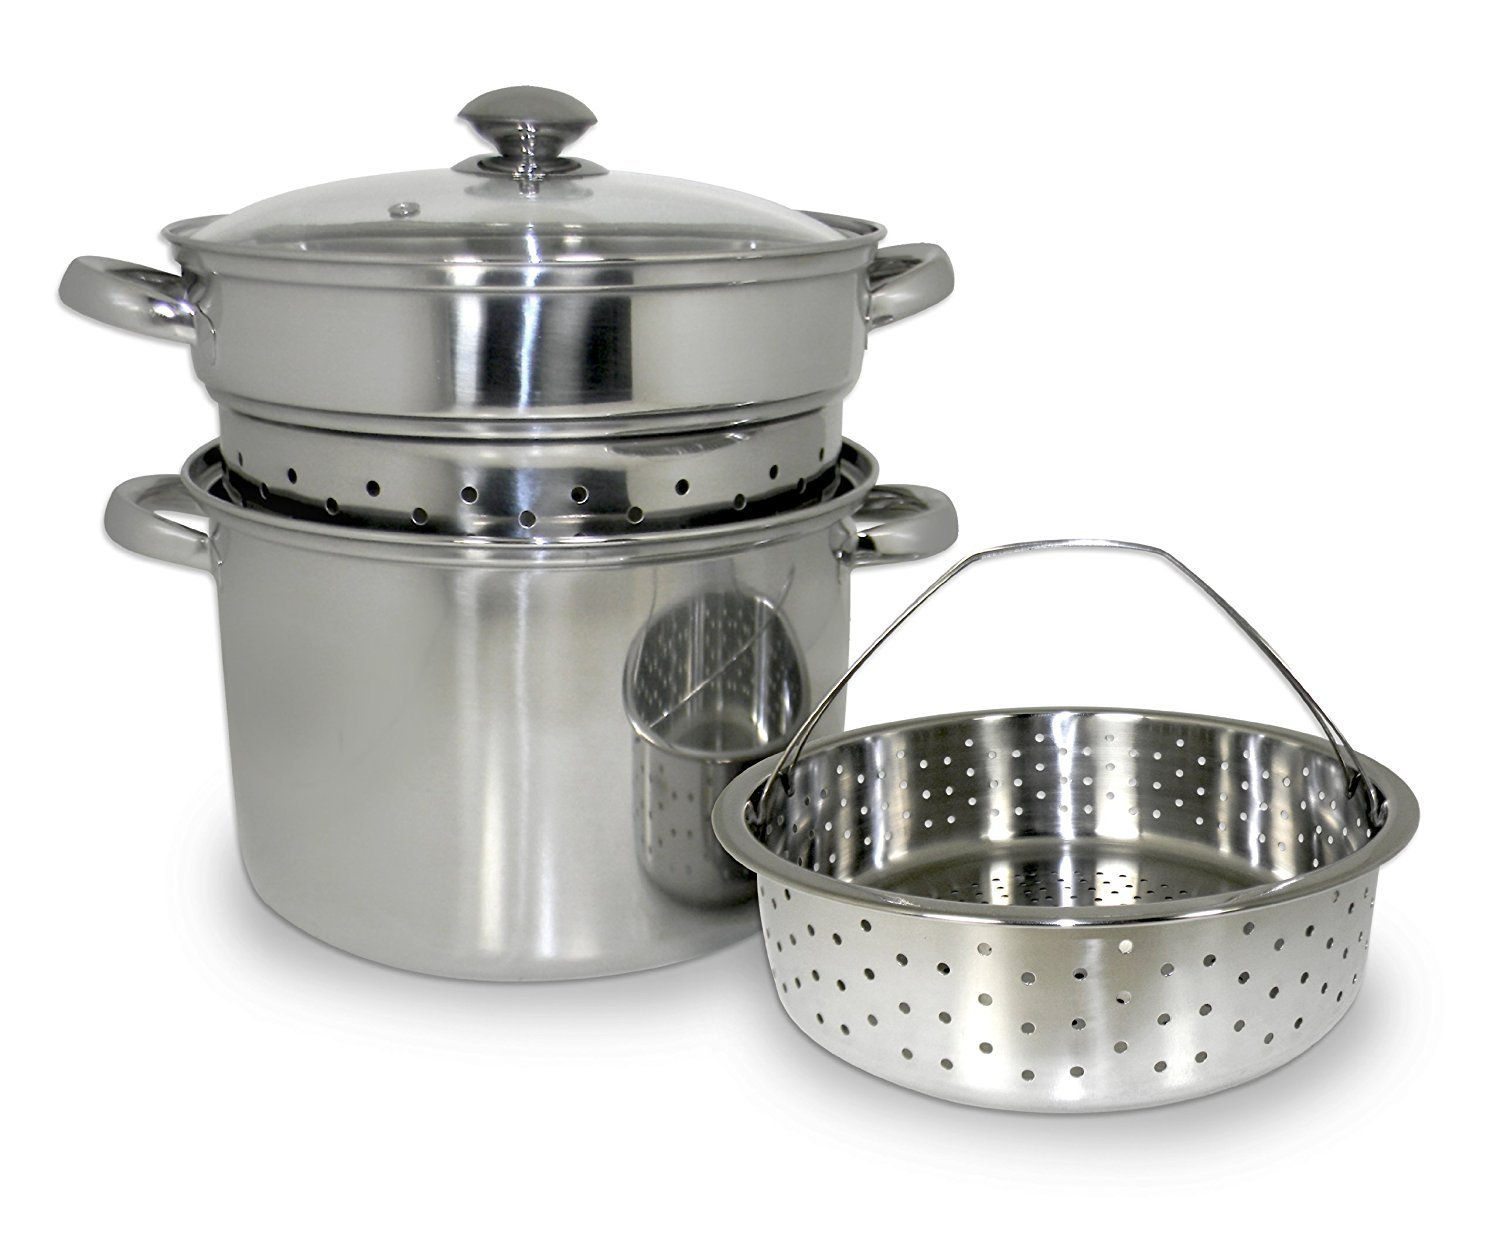 ExcelSteel 20 Qt Multifunction Stainless Steel Pasta Cooker with Encapsulated Base, Vented Glass Lid, and Riveted Handles